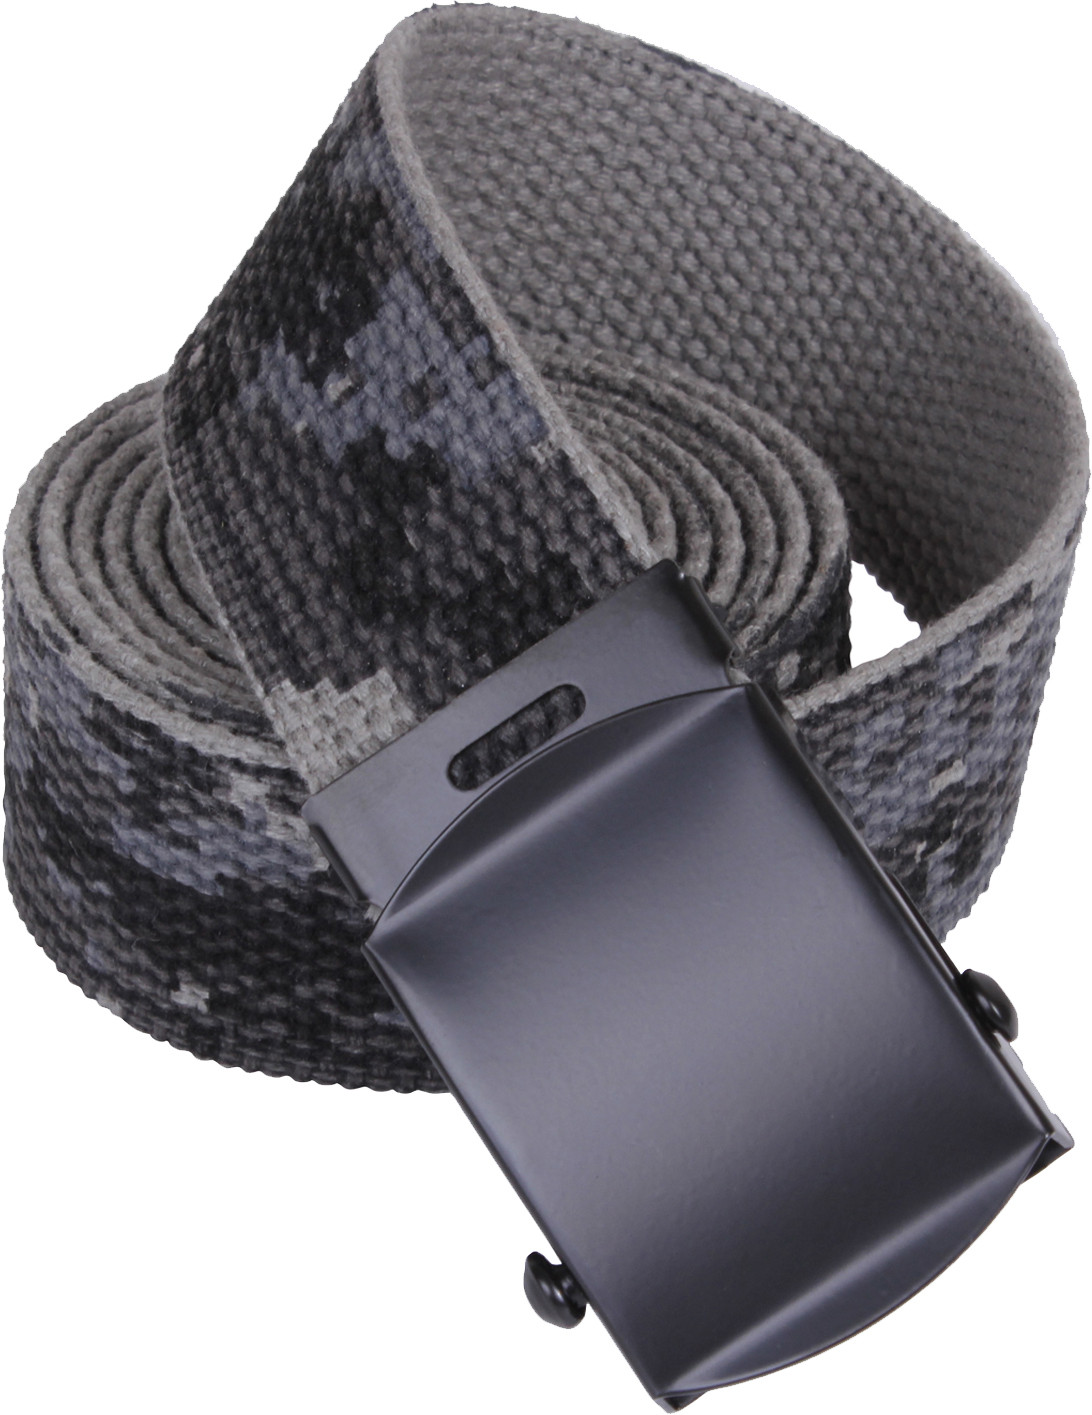 Subdued Urban Digital Camouflage Reversible Web Belt Black Buckle (54